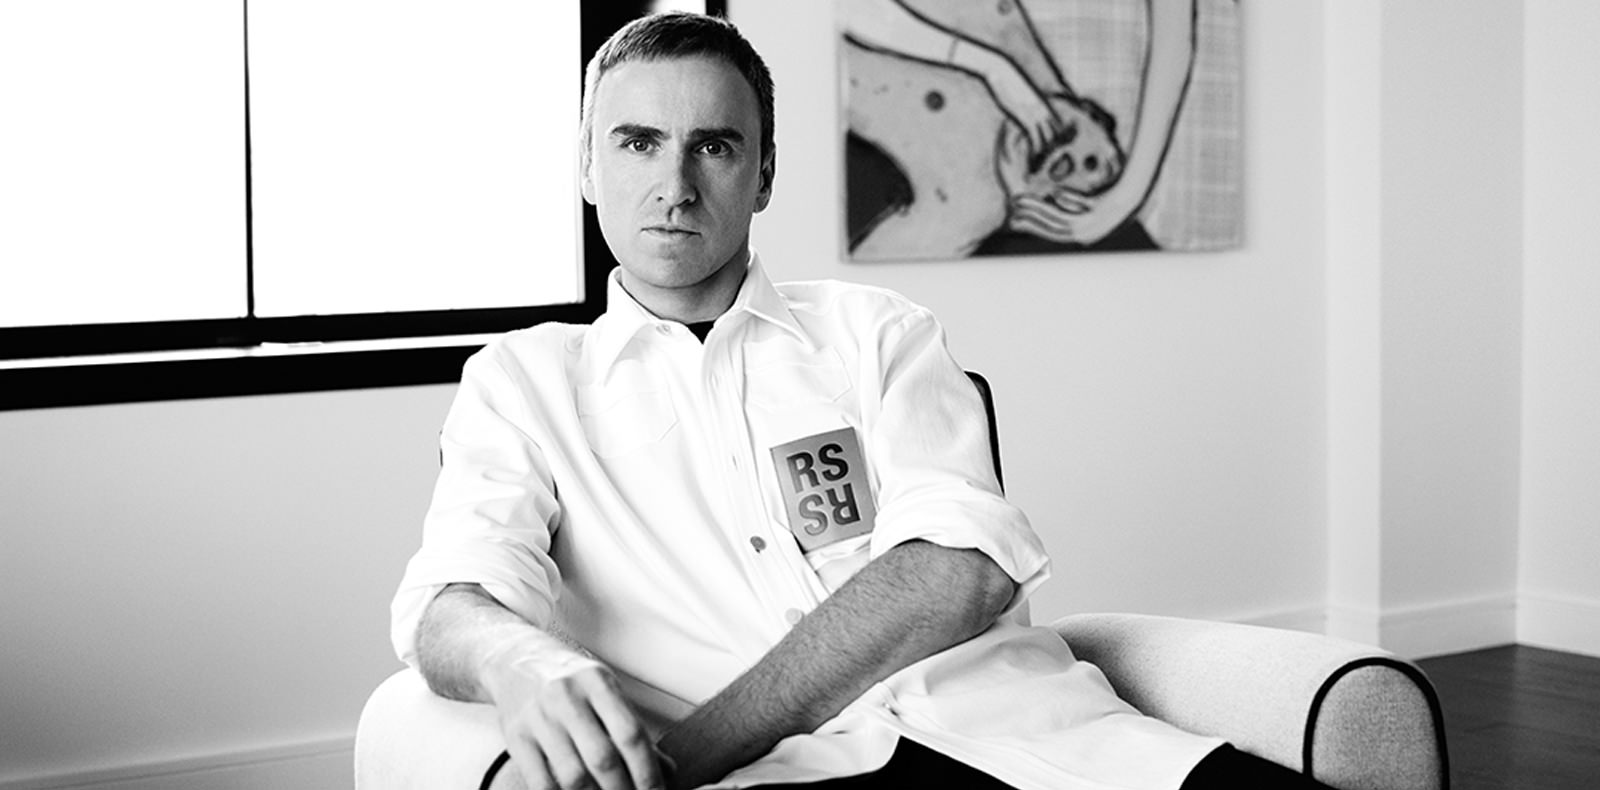 Raf Simons new artistic director of Calvin Klein: 5 things to know about this inspired designer